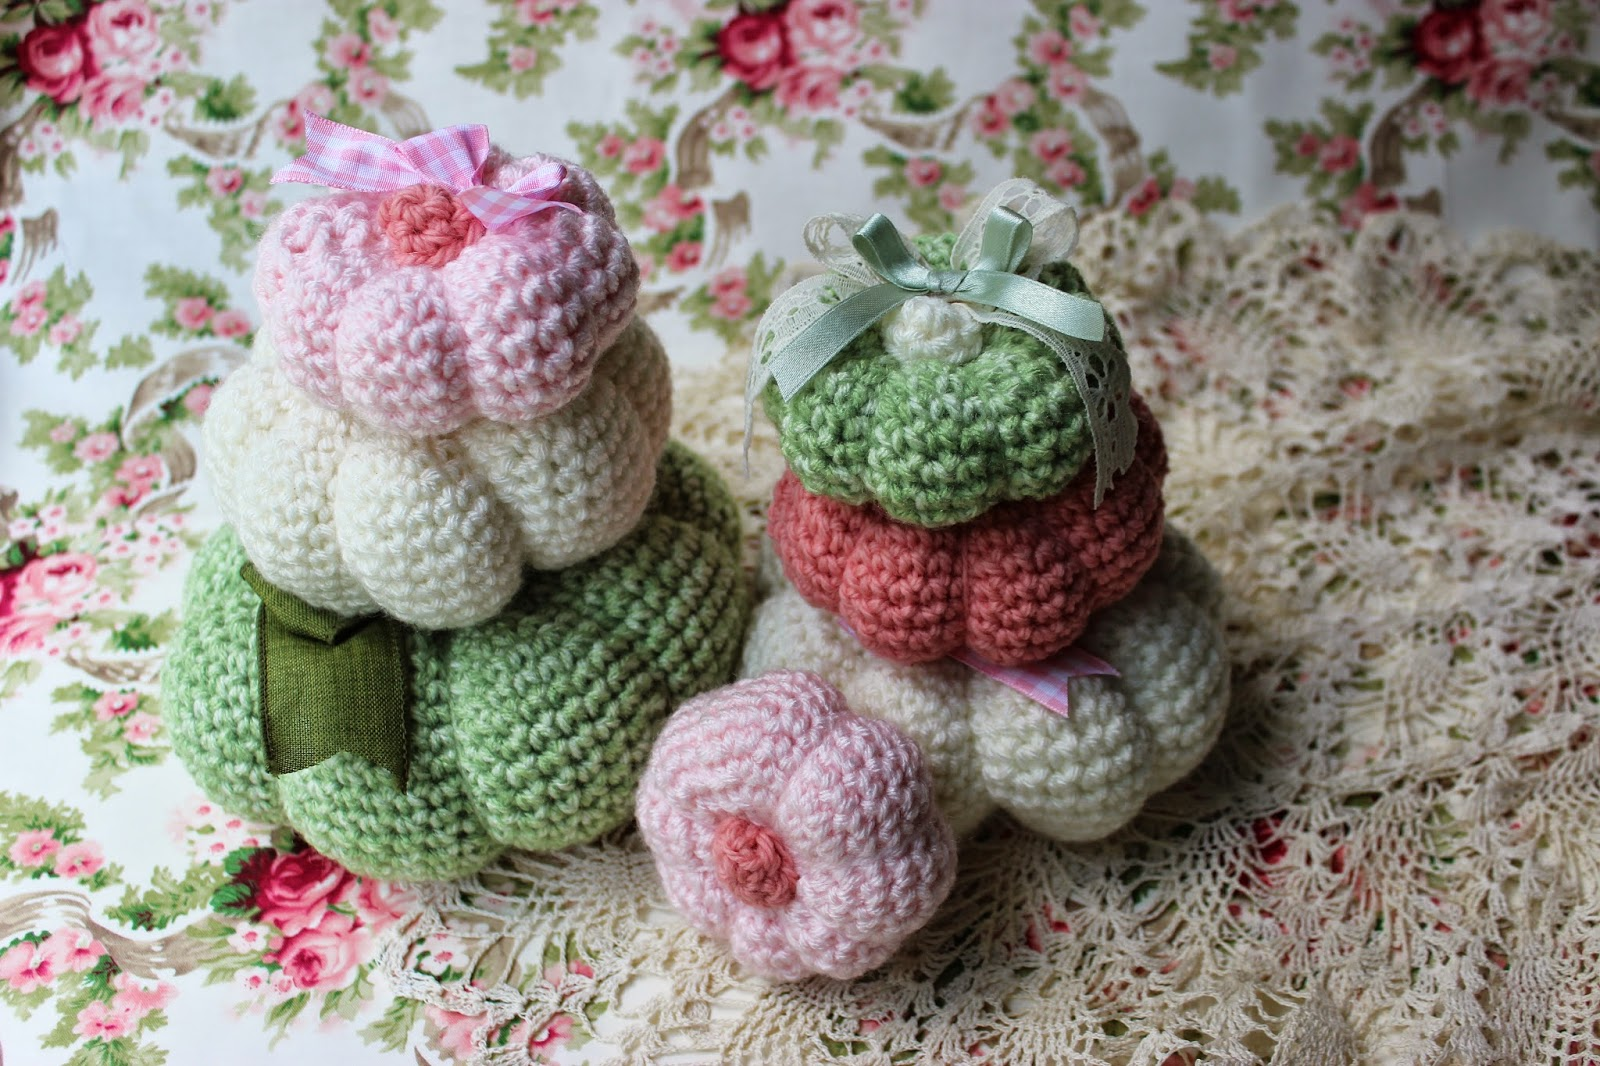 Crochet these cute little pumpkins in shabby colors. They are easy to make a quick too!